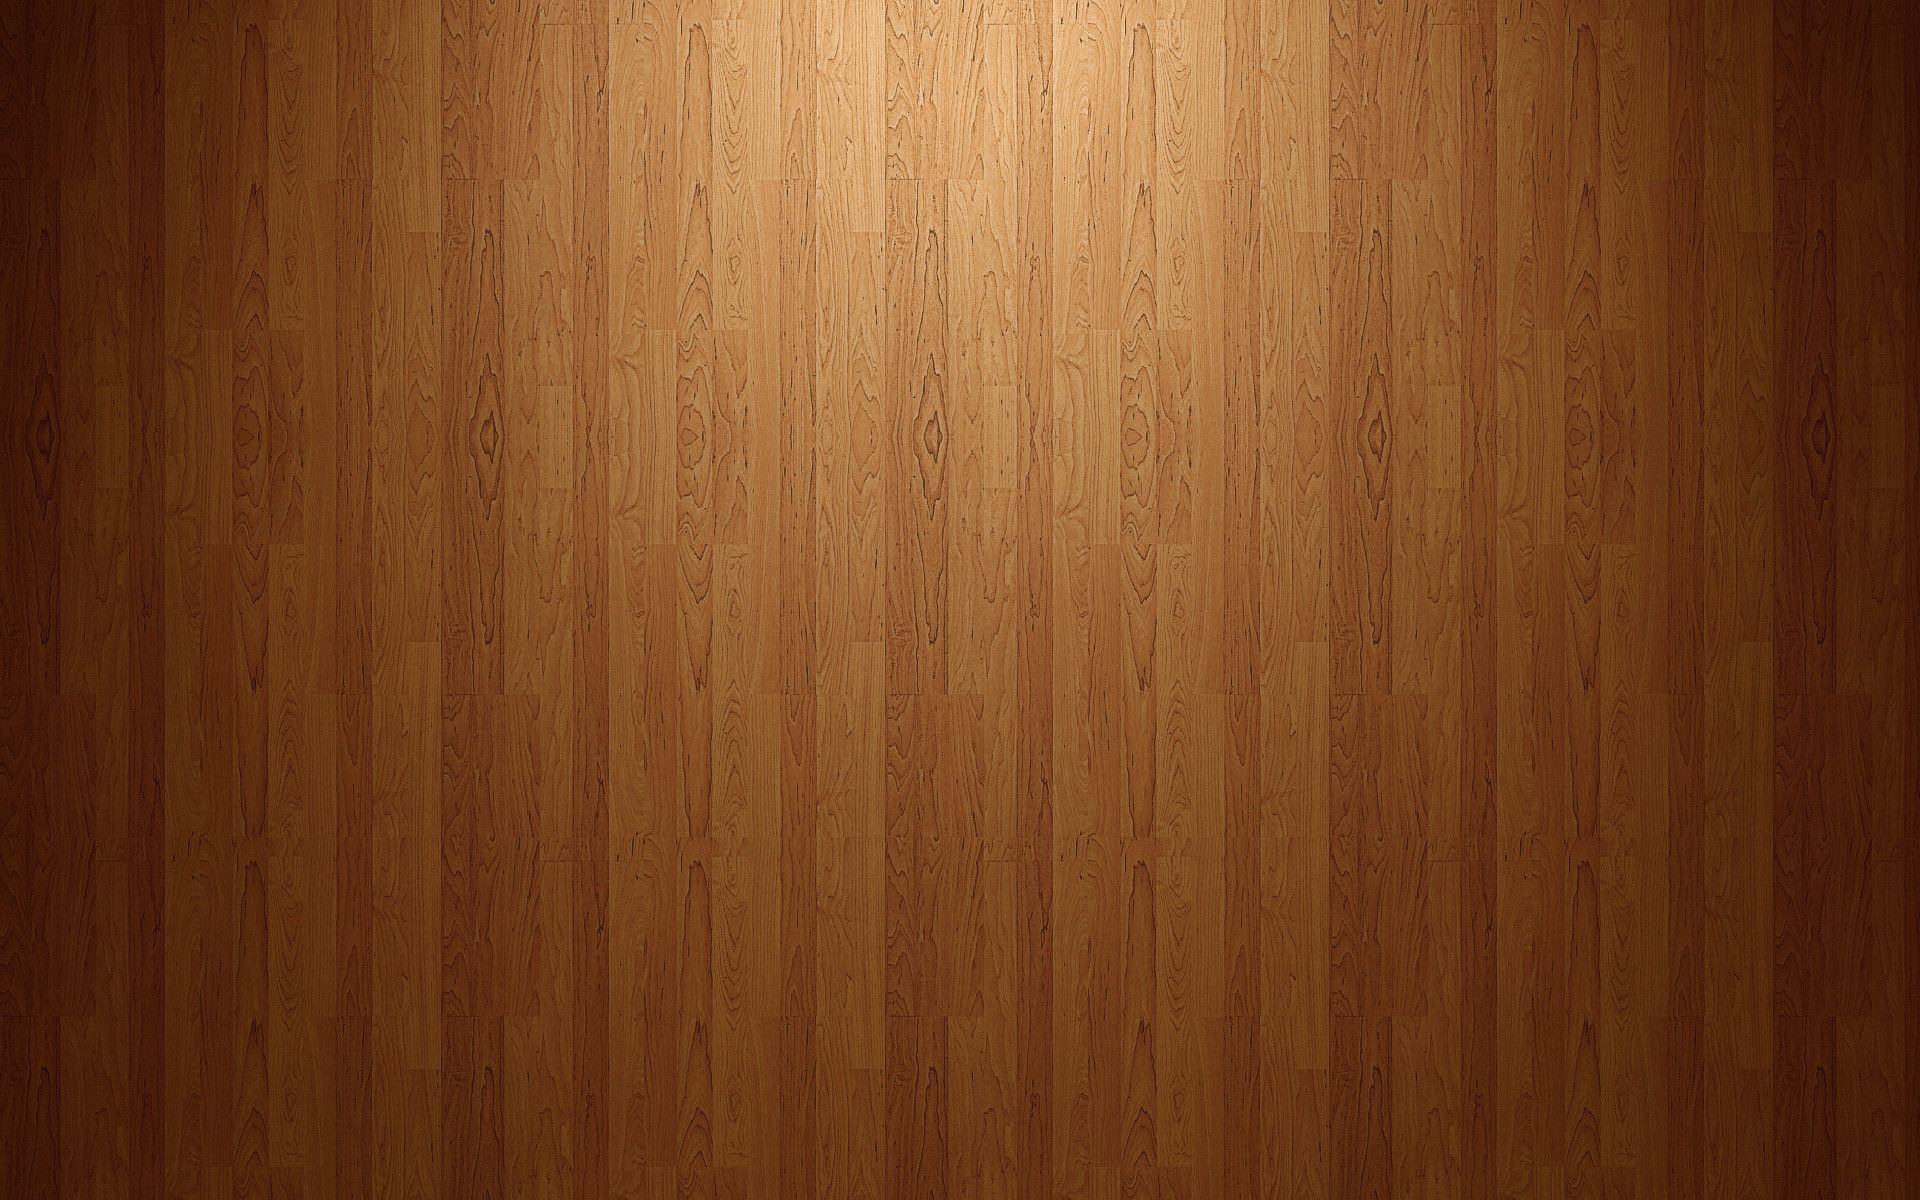 HD Wood Desktop Wallpaper